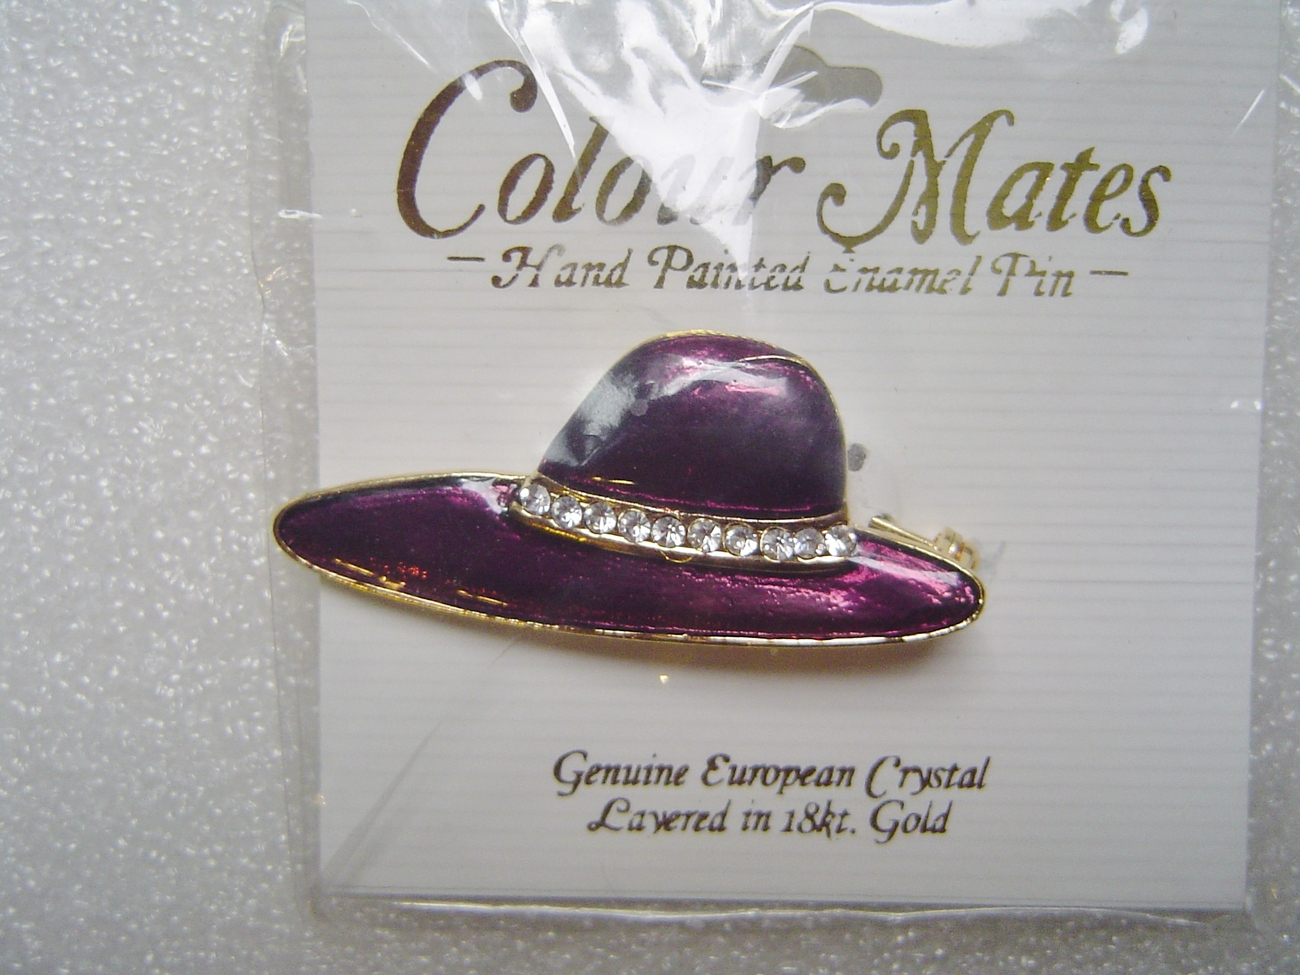 Colour Mates Purple Hat Enamel Crystal Brooch Pin 18k Gold Layered